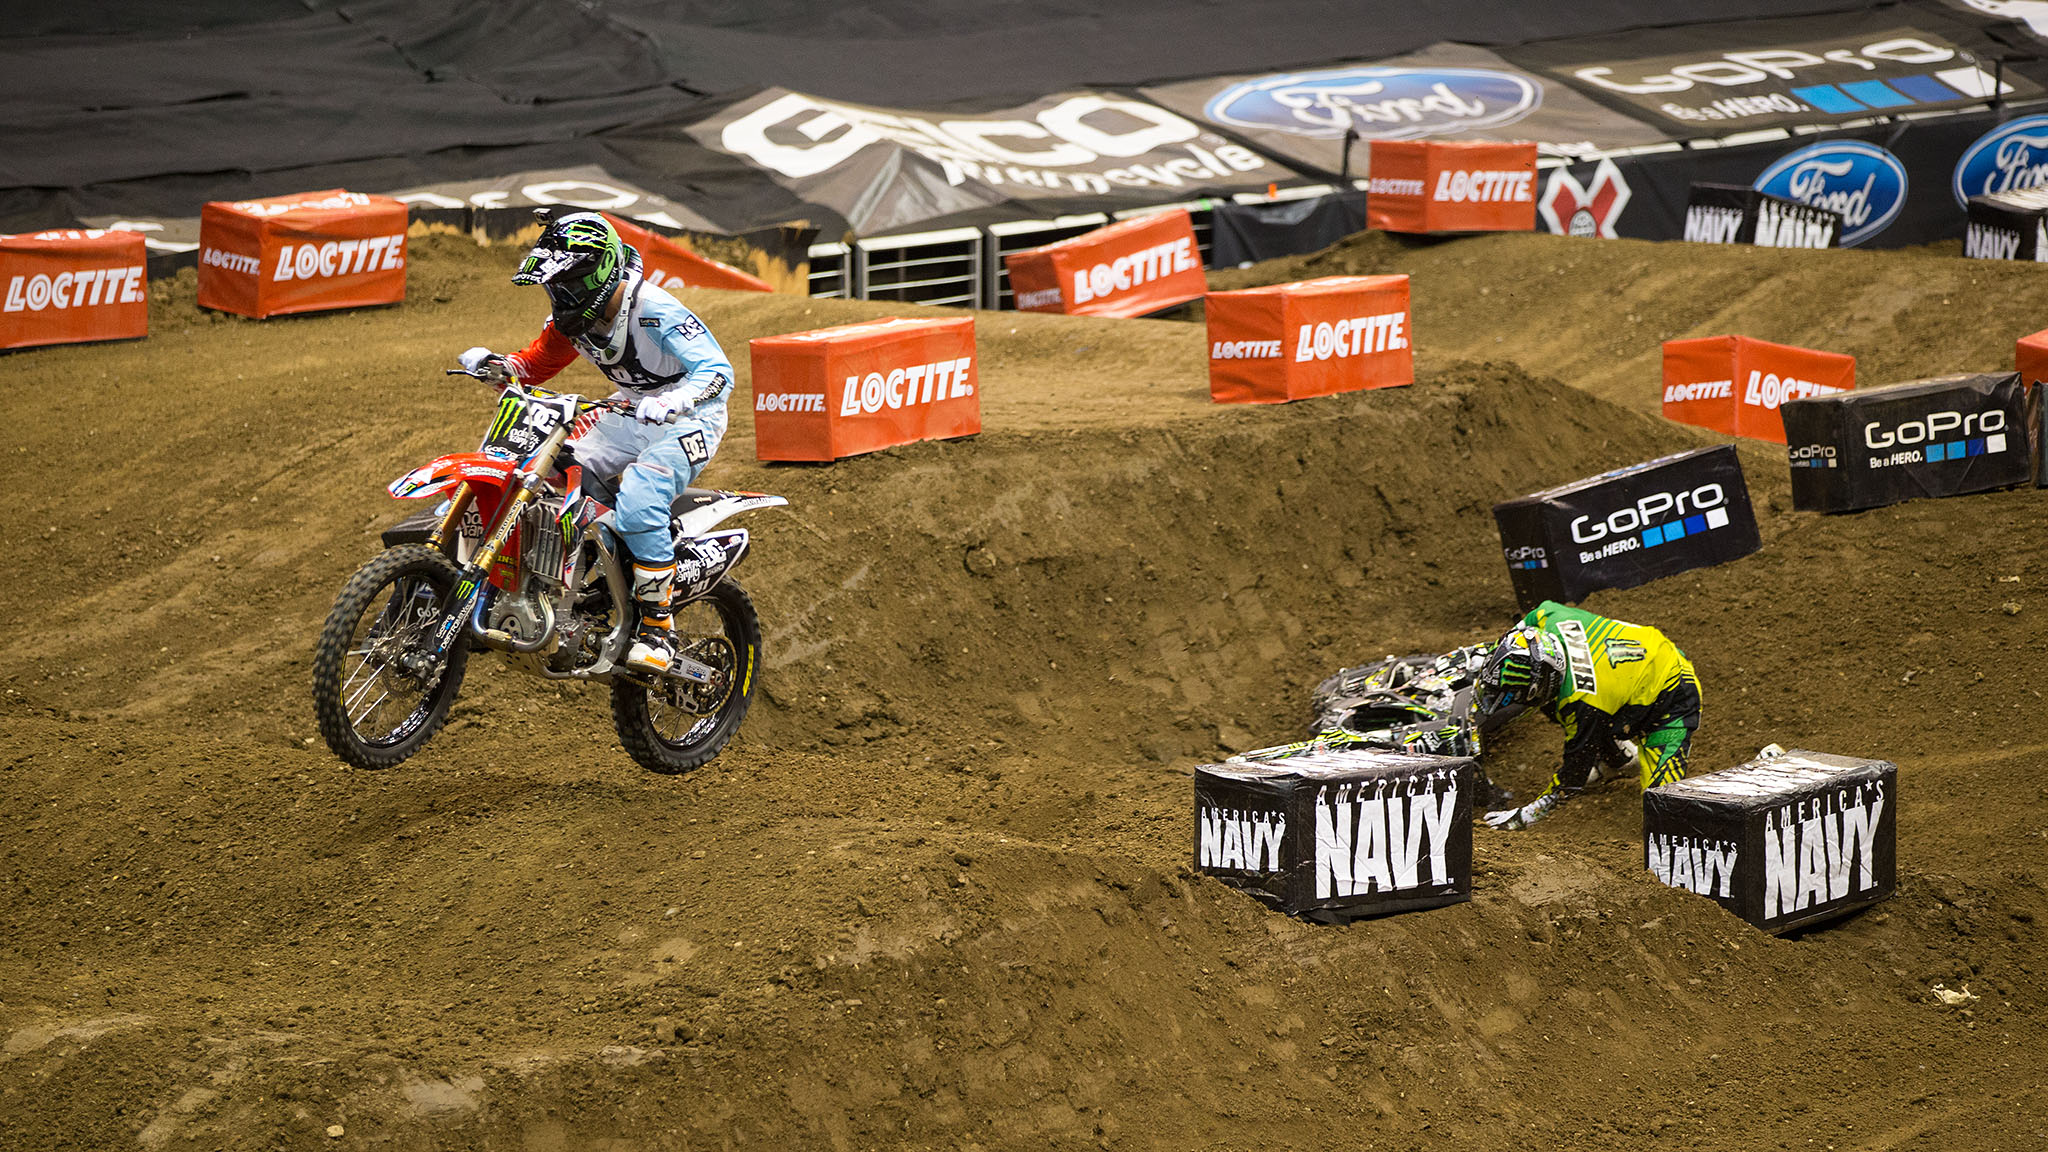 Nate Adams passes Blake Bilko Williams in the final for Speed & Style at X Games Los Angeles 2013. Williams crashed on the third lap, allowing Adams to take the lead and secure his fourth X Games gold medal and 18th overall, the most Moto X medals in X Games history.